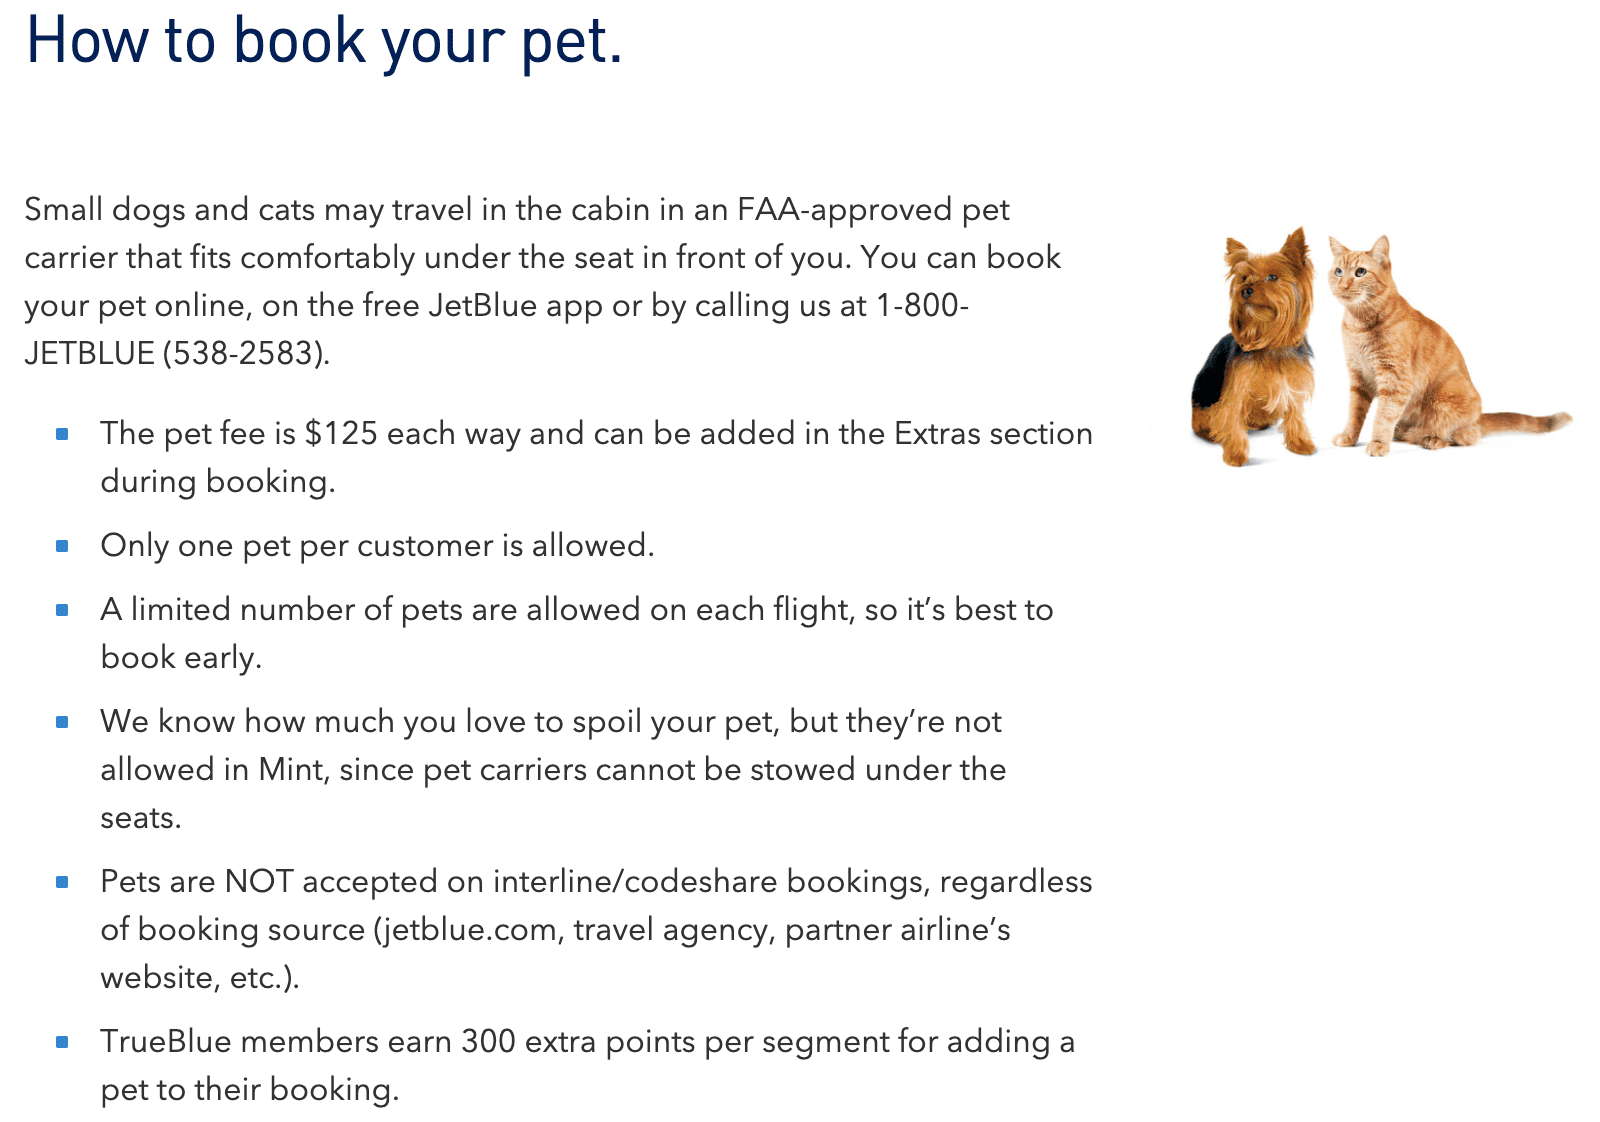 JetBlue Pet Policy